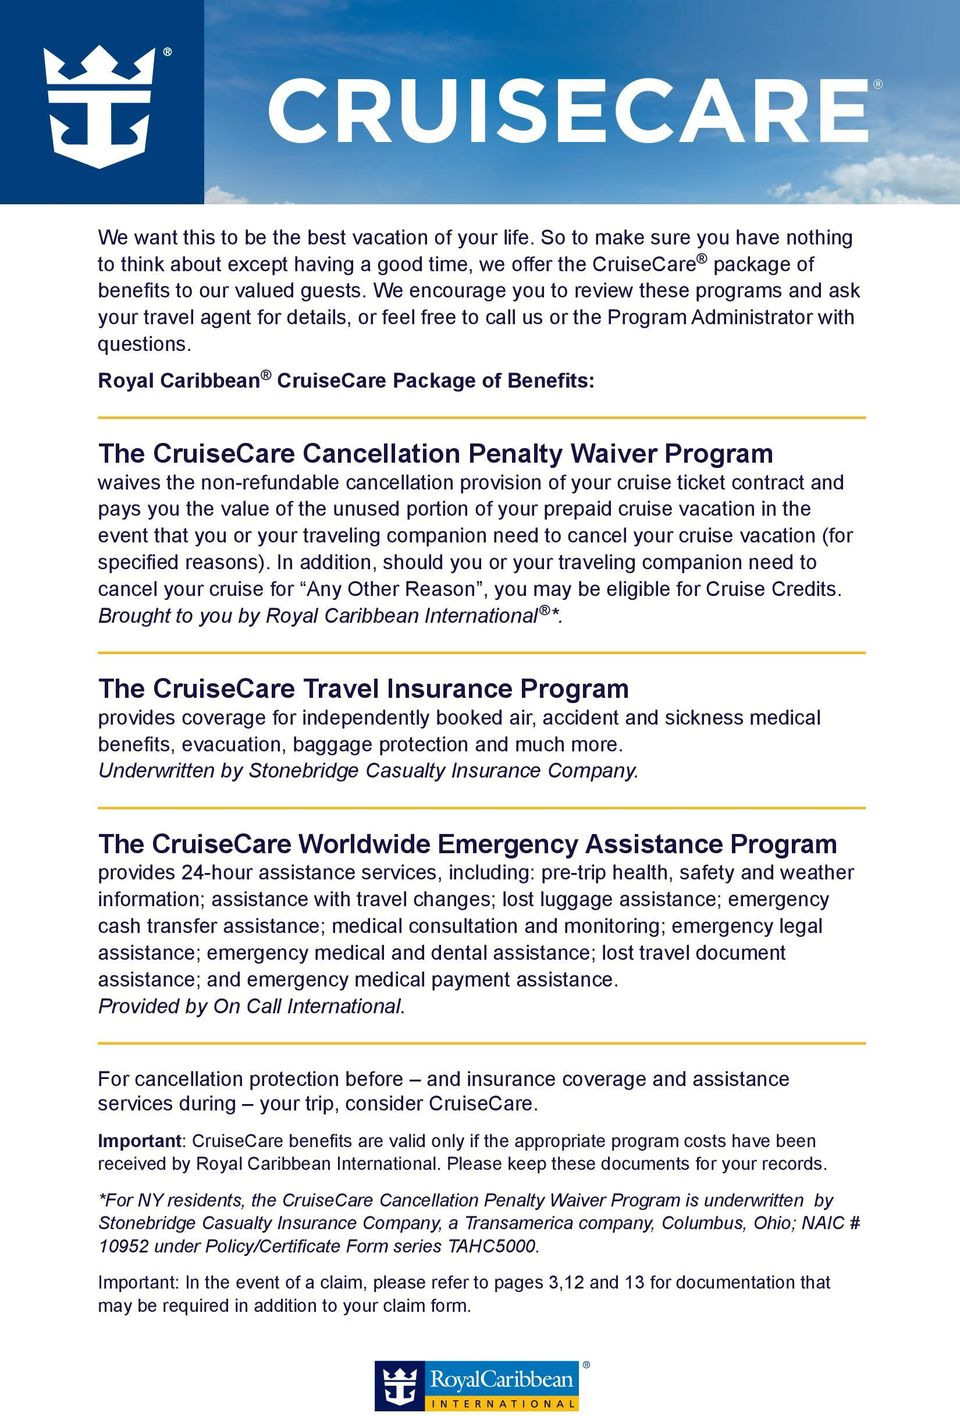 We encourage you to review these programs and ask your travel agent for details, or feel free to call us or the Program Administrator with questions.